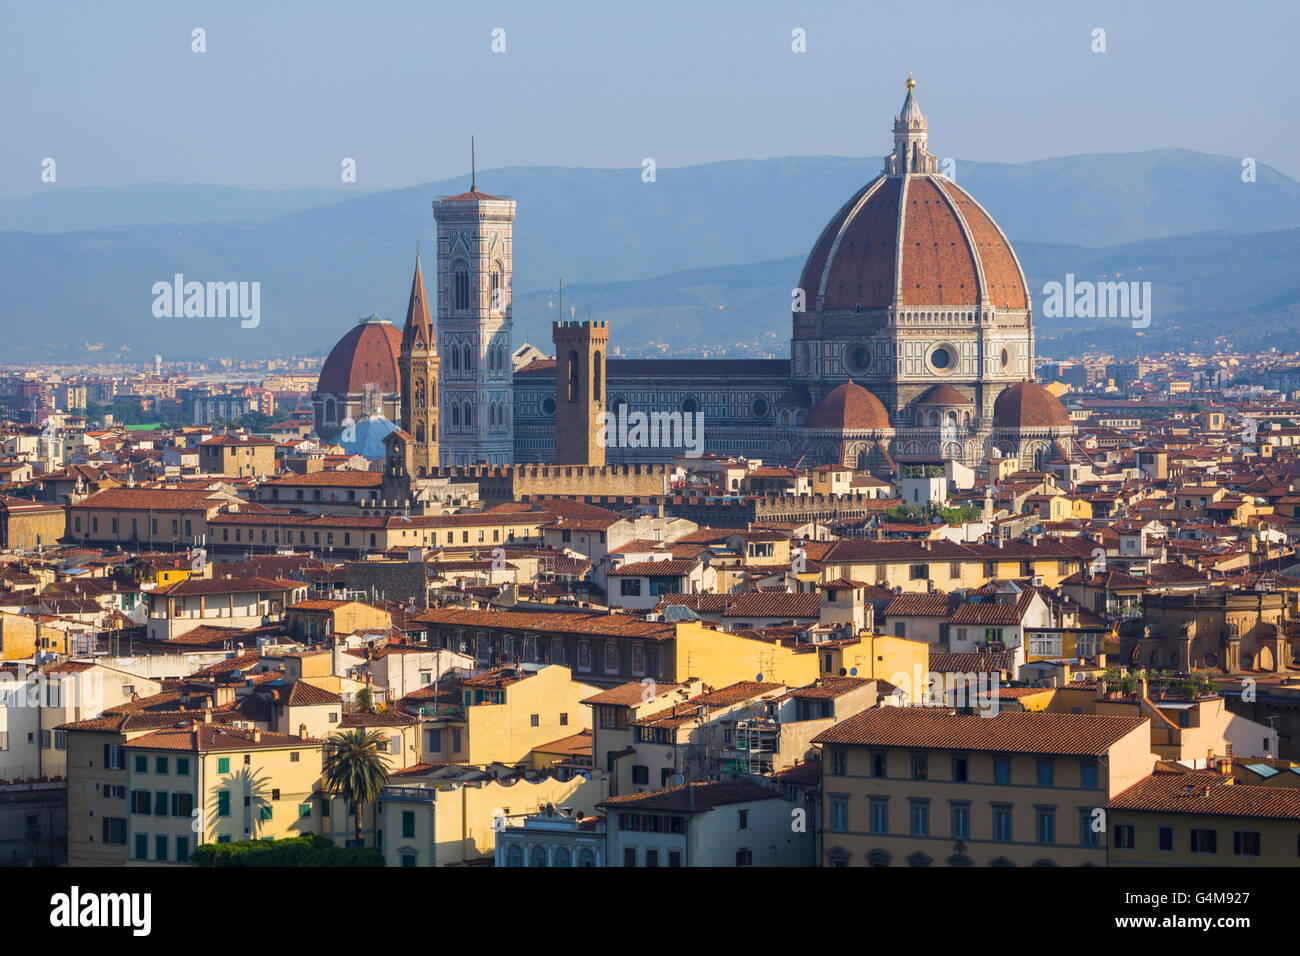 Florence, Tuscany, Italy.  View over the city to the Duomo - Cattedrale di Santa Maria del Fiore - Stock Image